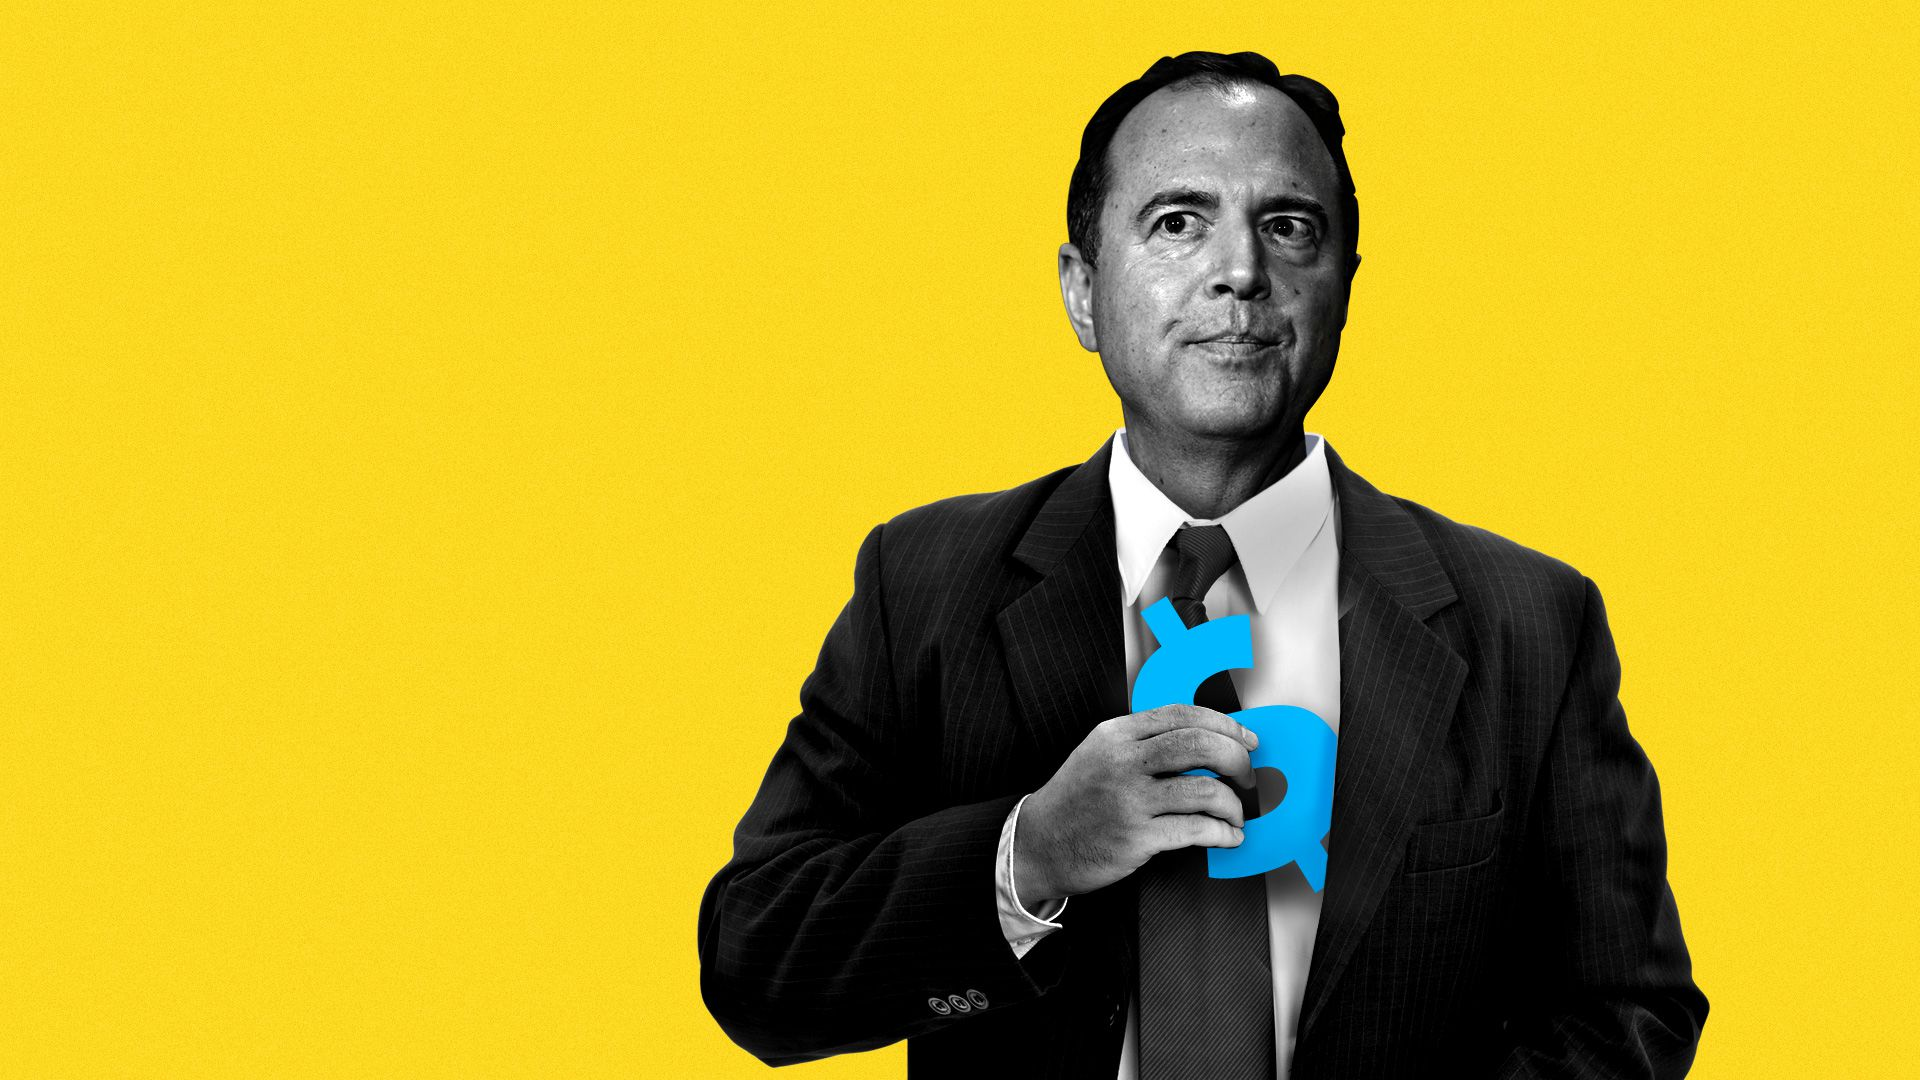 Illustration of Adam Schiff pulling a dollar sign from his jacket